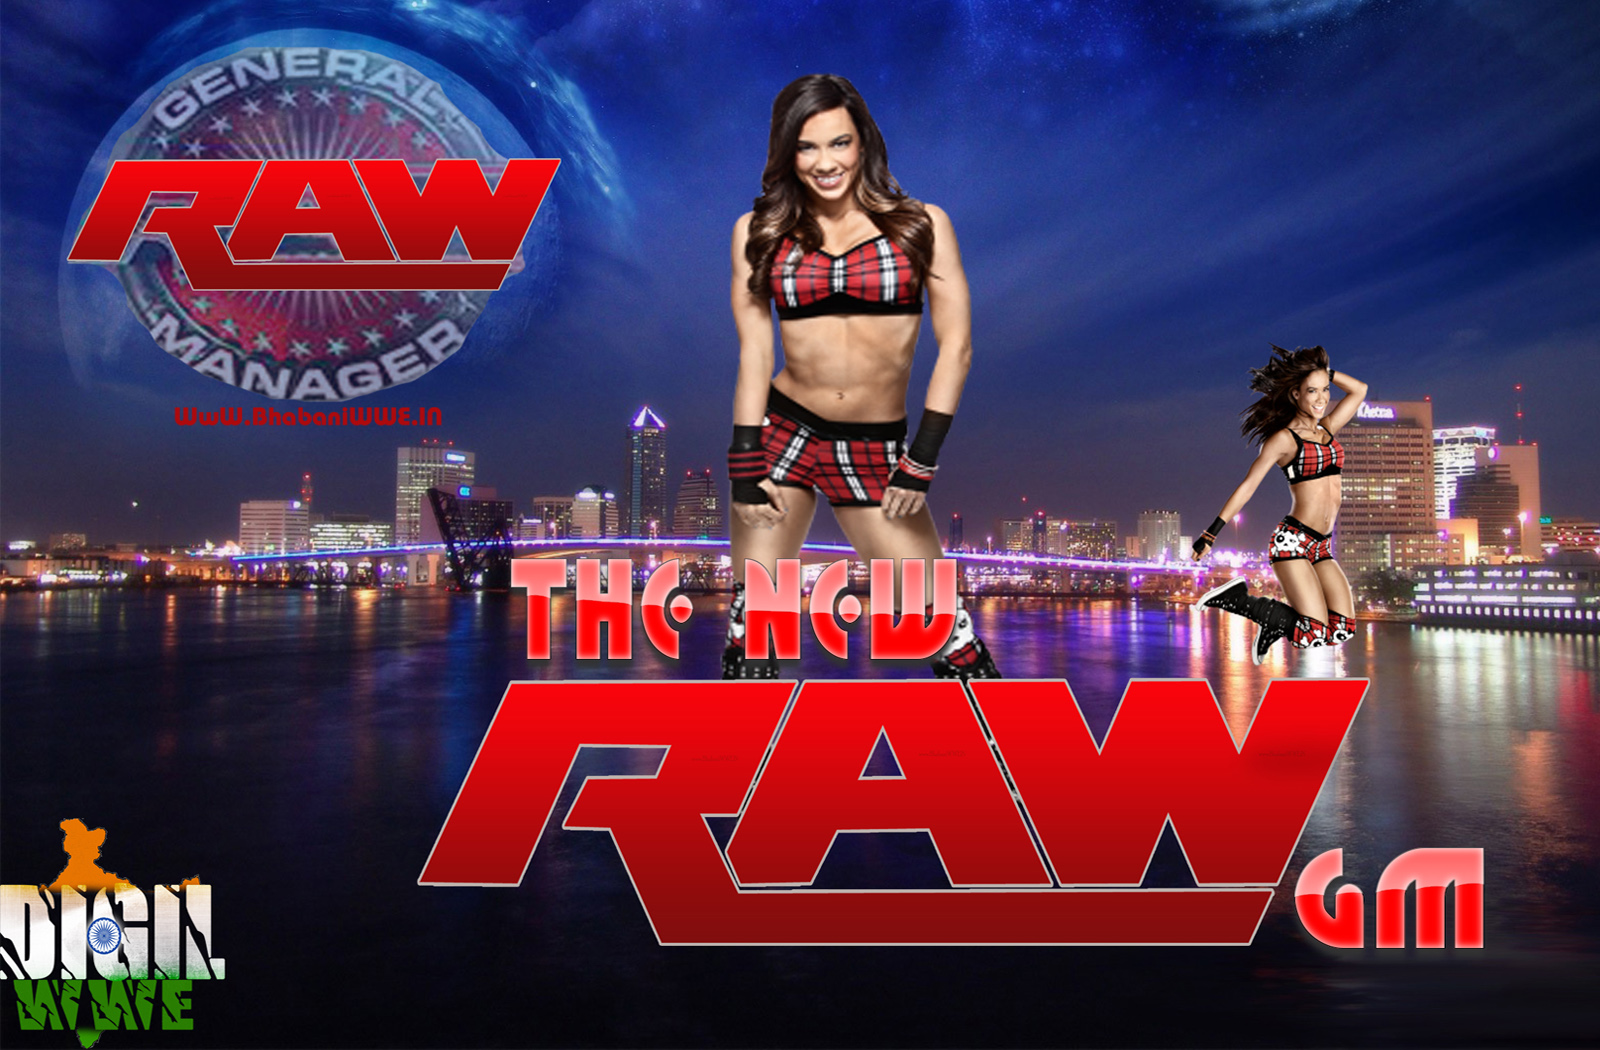 http://4.bp.blogspot.com/-c5eD5qXuPys/UBhJGXRb7aI/AAAAAAAAMFE/kClNJuojtJI/s1600/aj_lee_new_raw_gm_wallpaper_by_david_digil.jpg